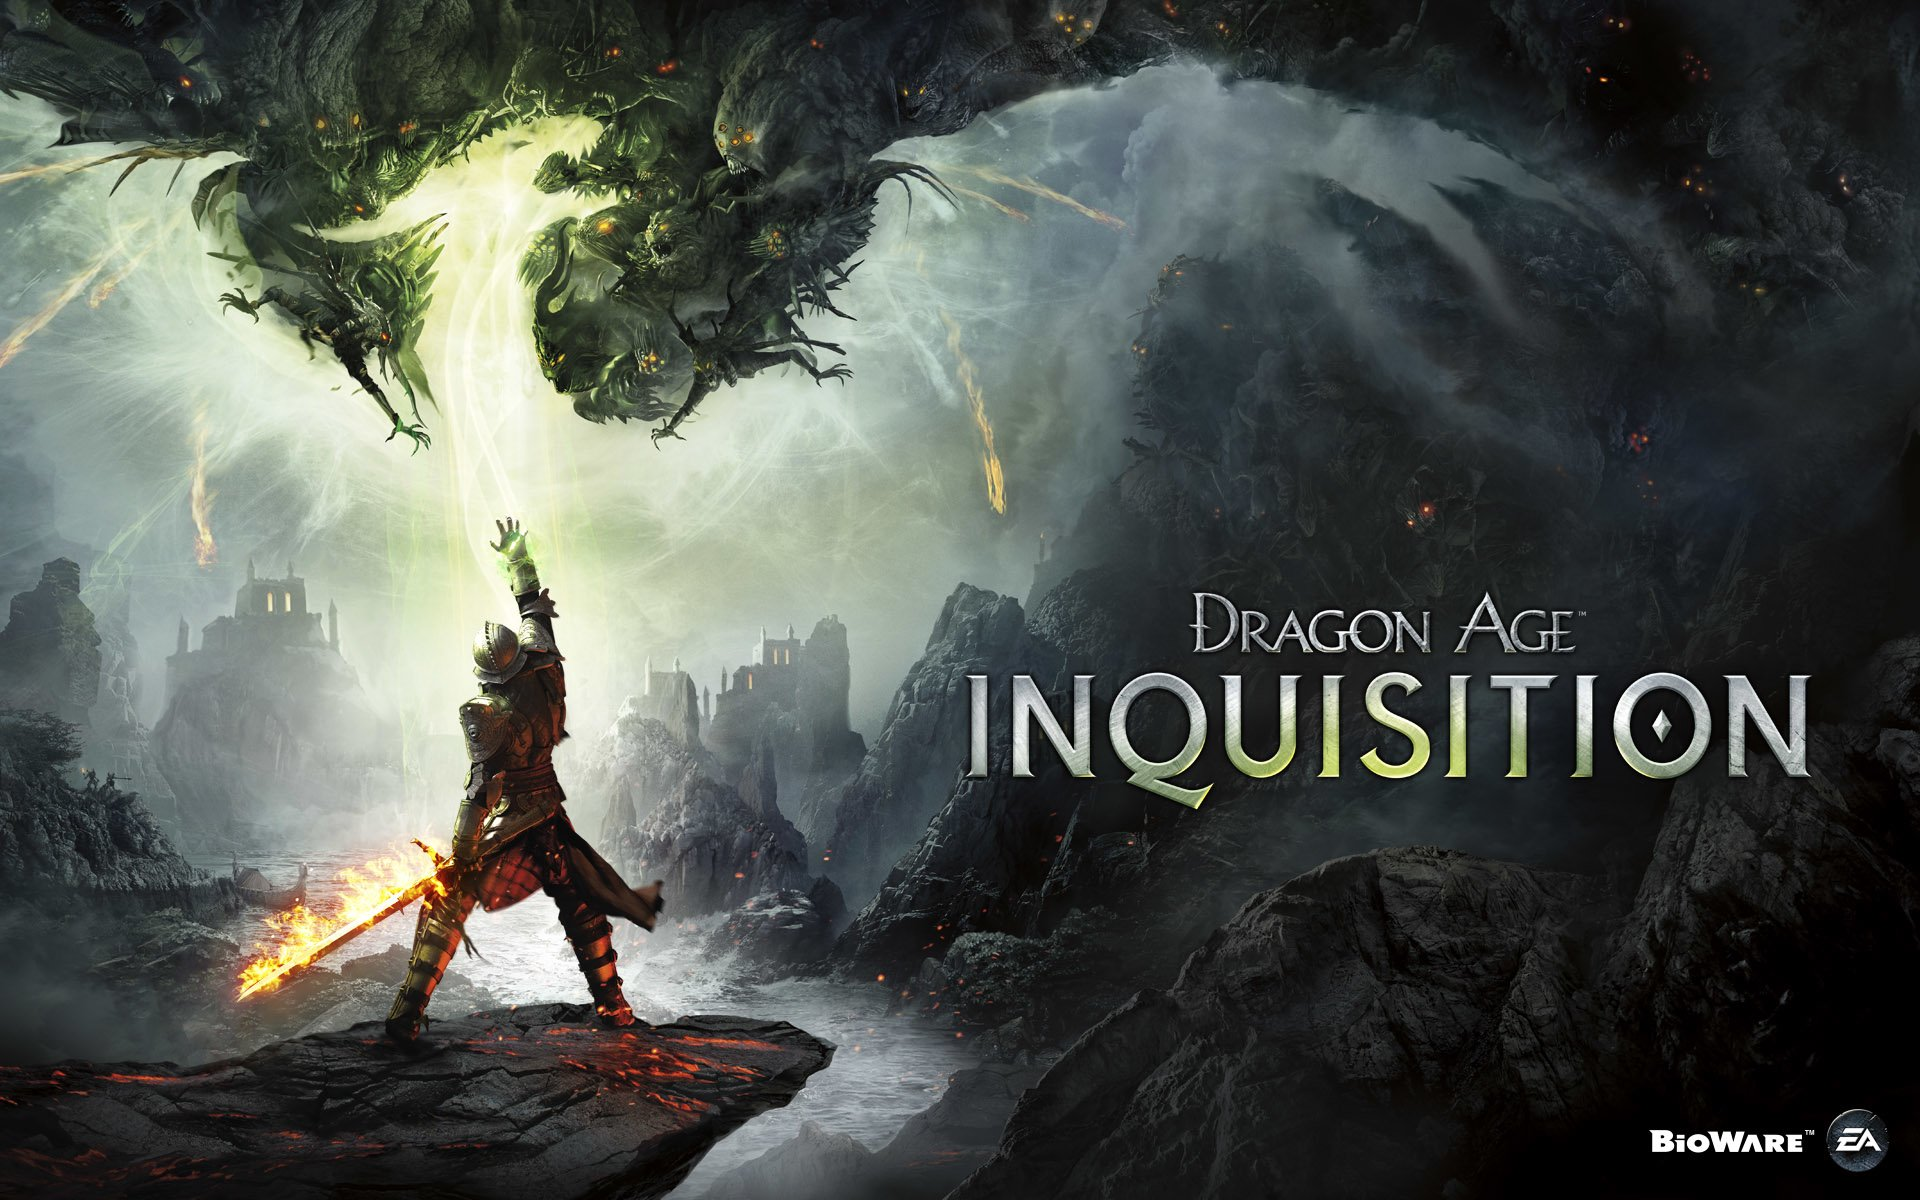 Dragon age inquisition hd wallpaper background image - Dragon age inquisition wallpaper 4k ...